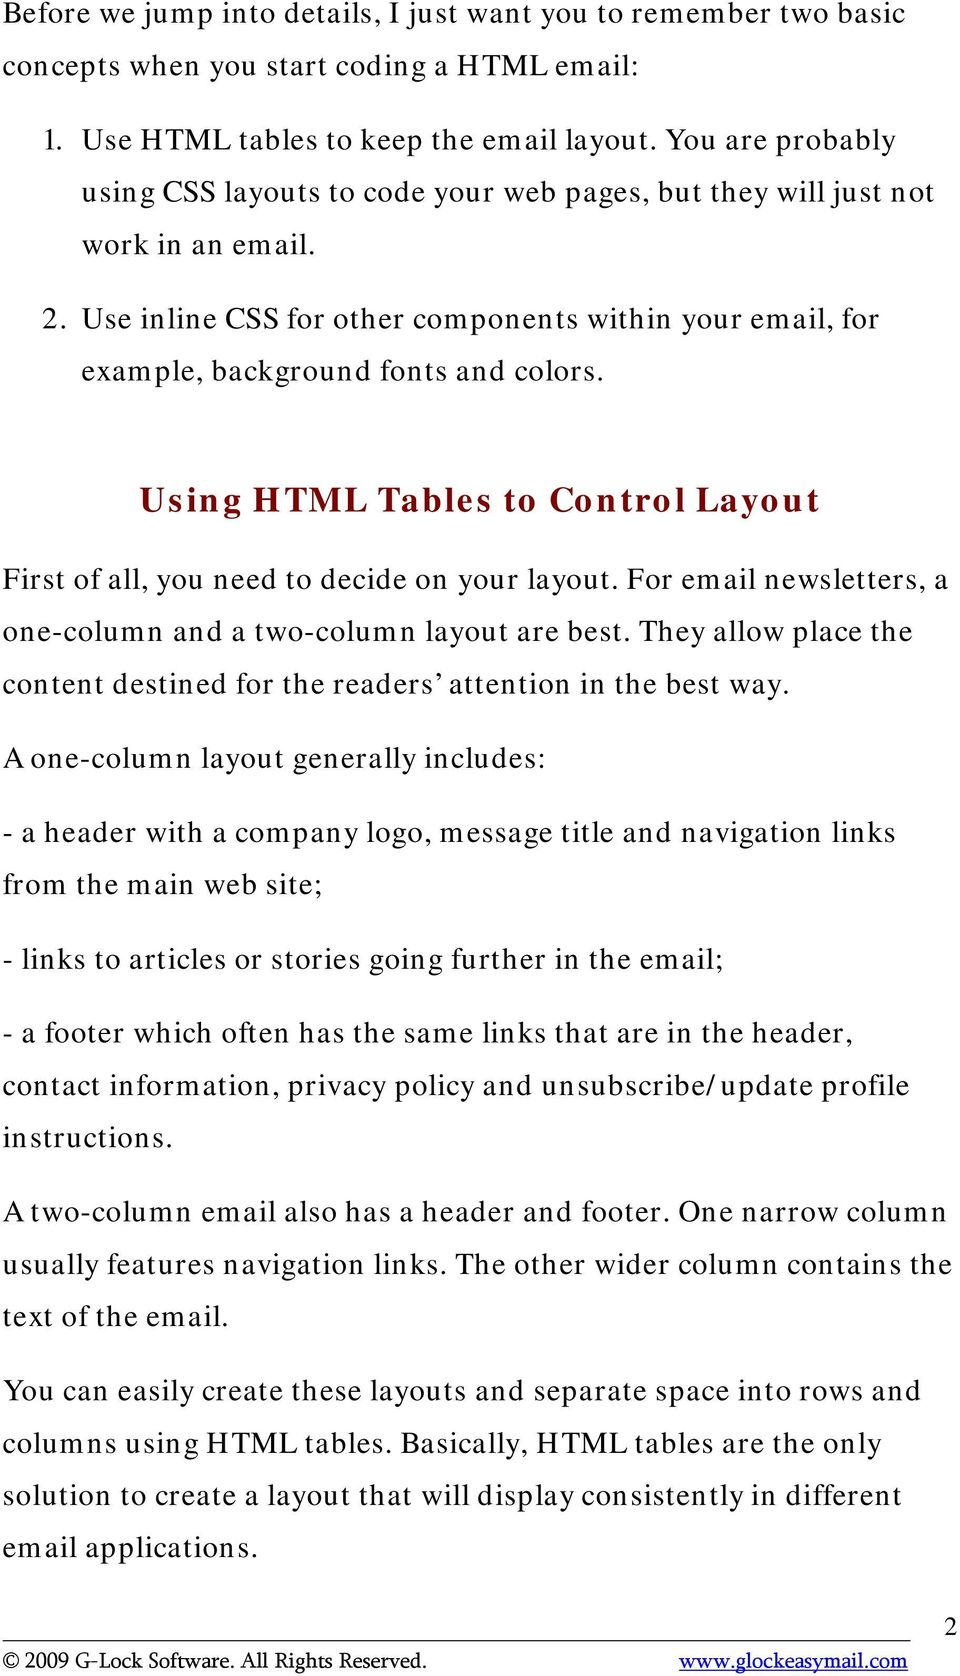 Using HTML Tables to Control Layout First of all, you need to decide on your layout. For email newsletters, a one-column and a two-column layout are best.